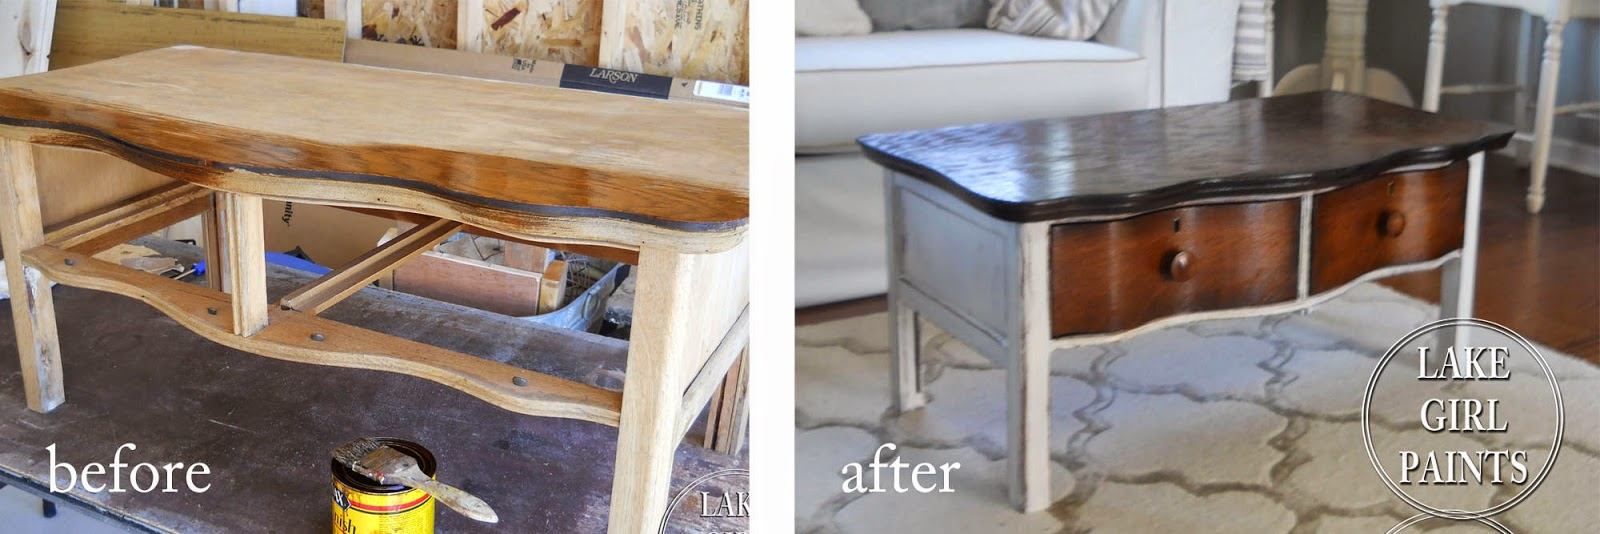 lake girl paints old dresser turns coffee table before and after end megan inherited from grandma modern chairs tall square side inch lamps chinese with stools living room